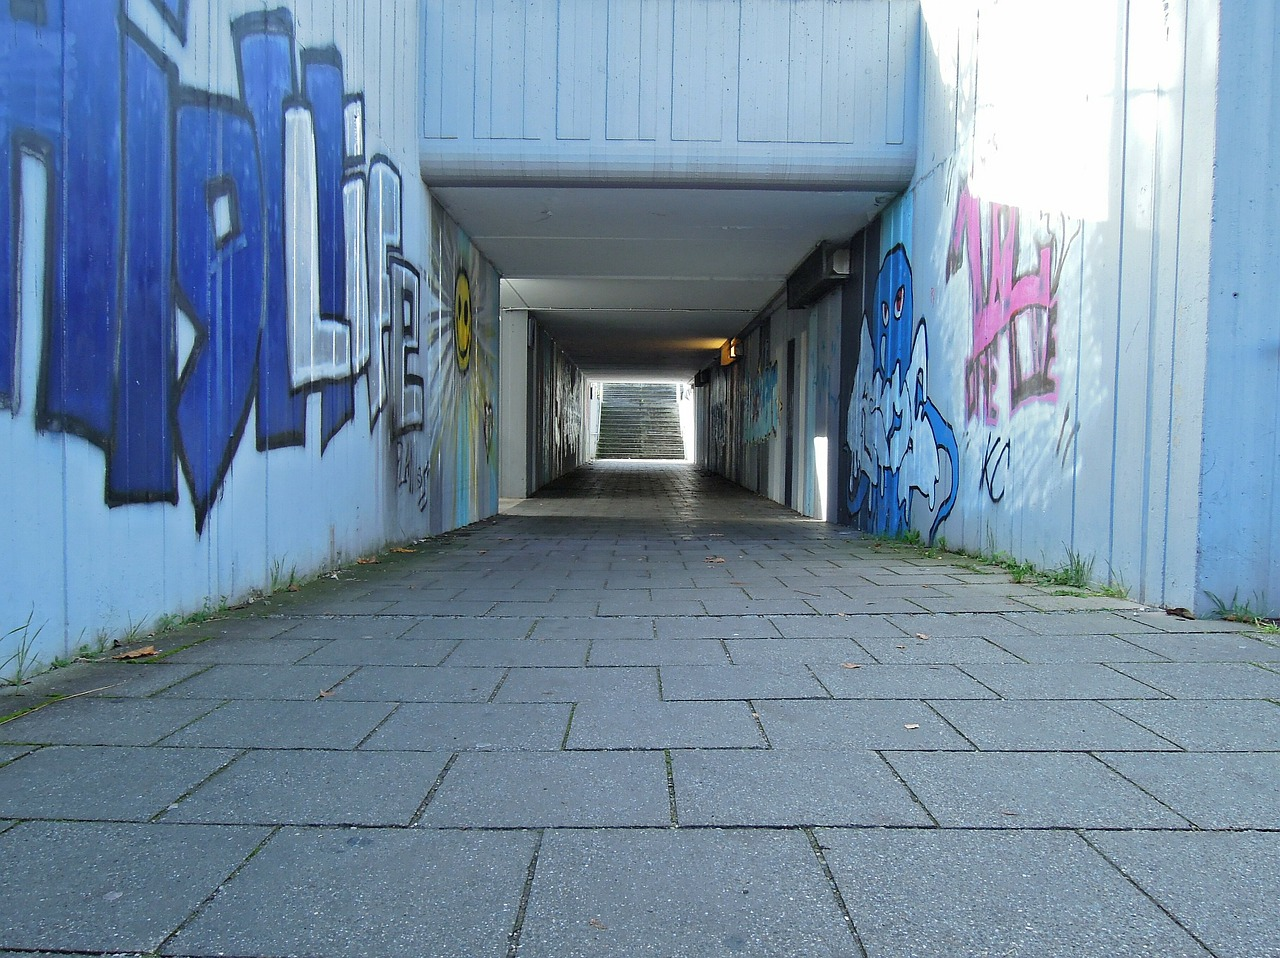 underpass railway underpass concrete free photo